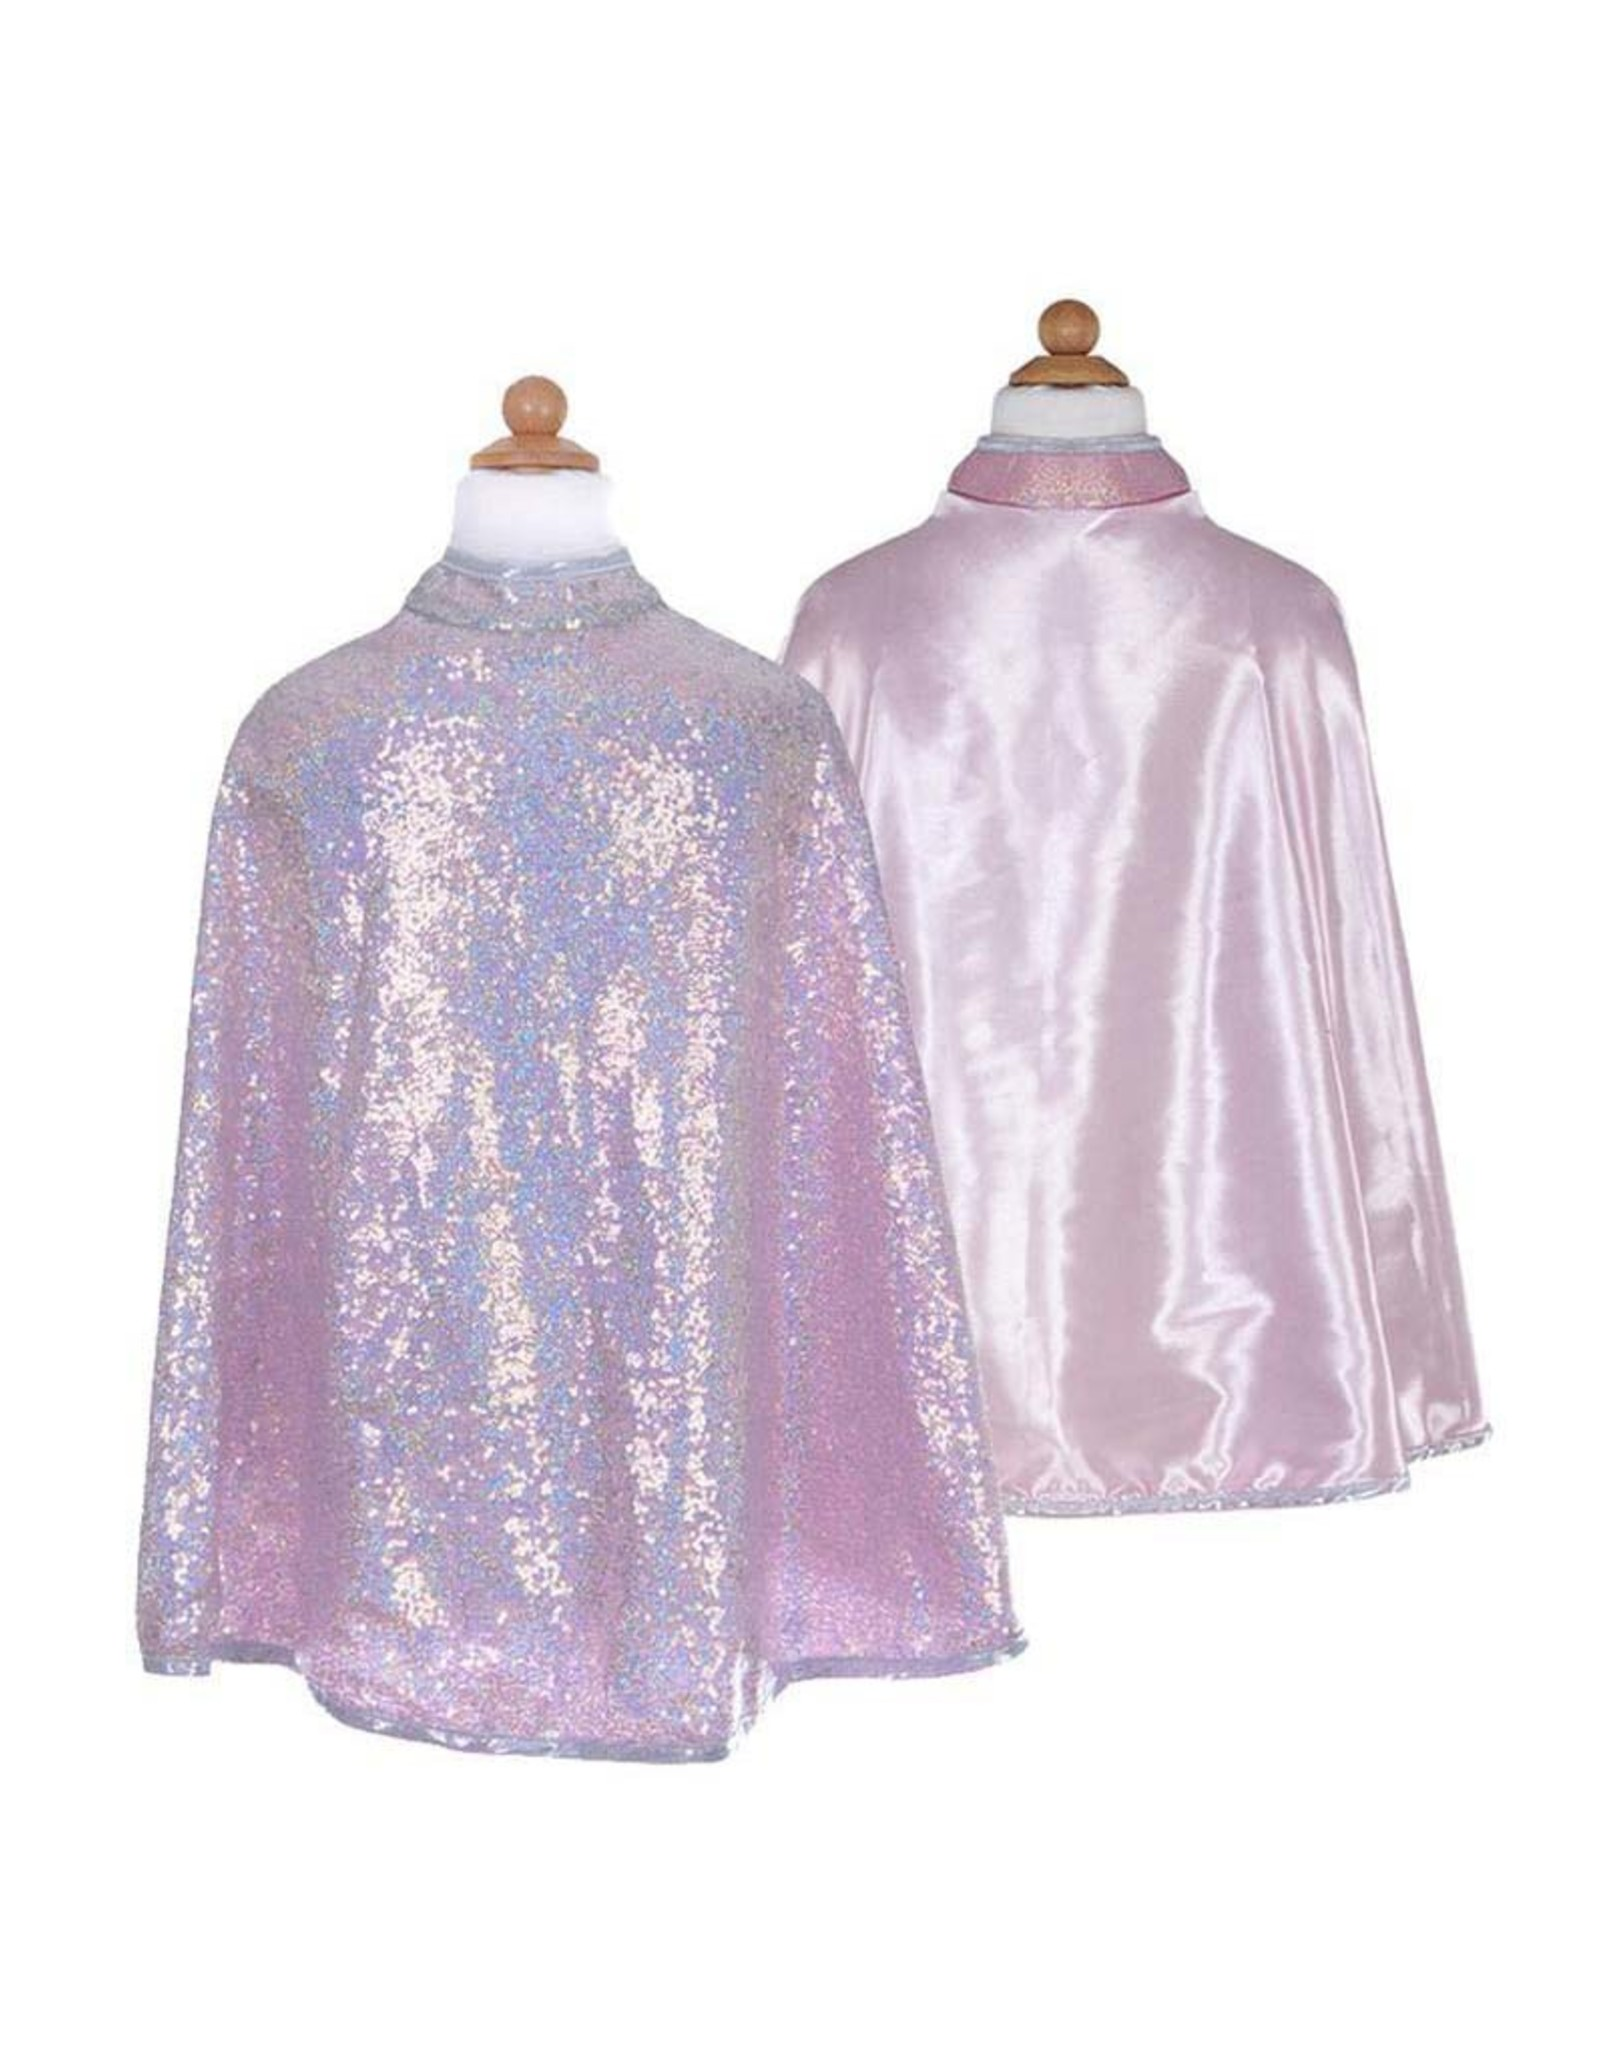 Great Pretenders Silver Sequins Reversible Cape, Size 5-6